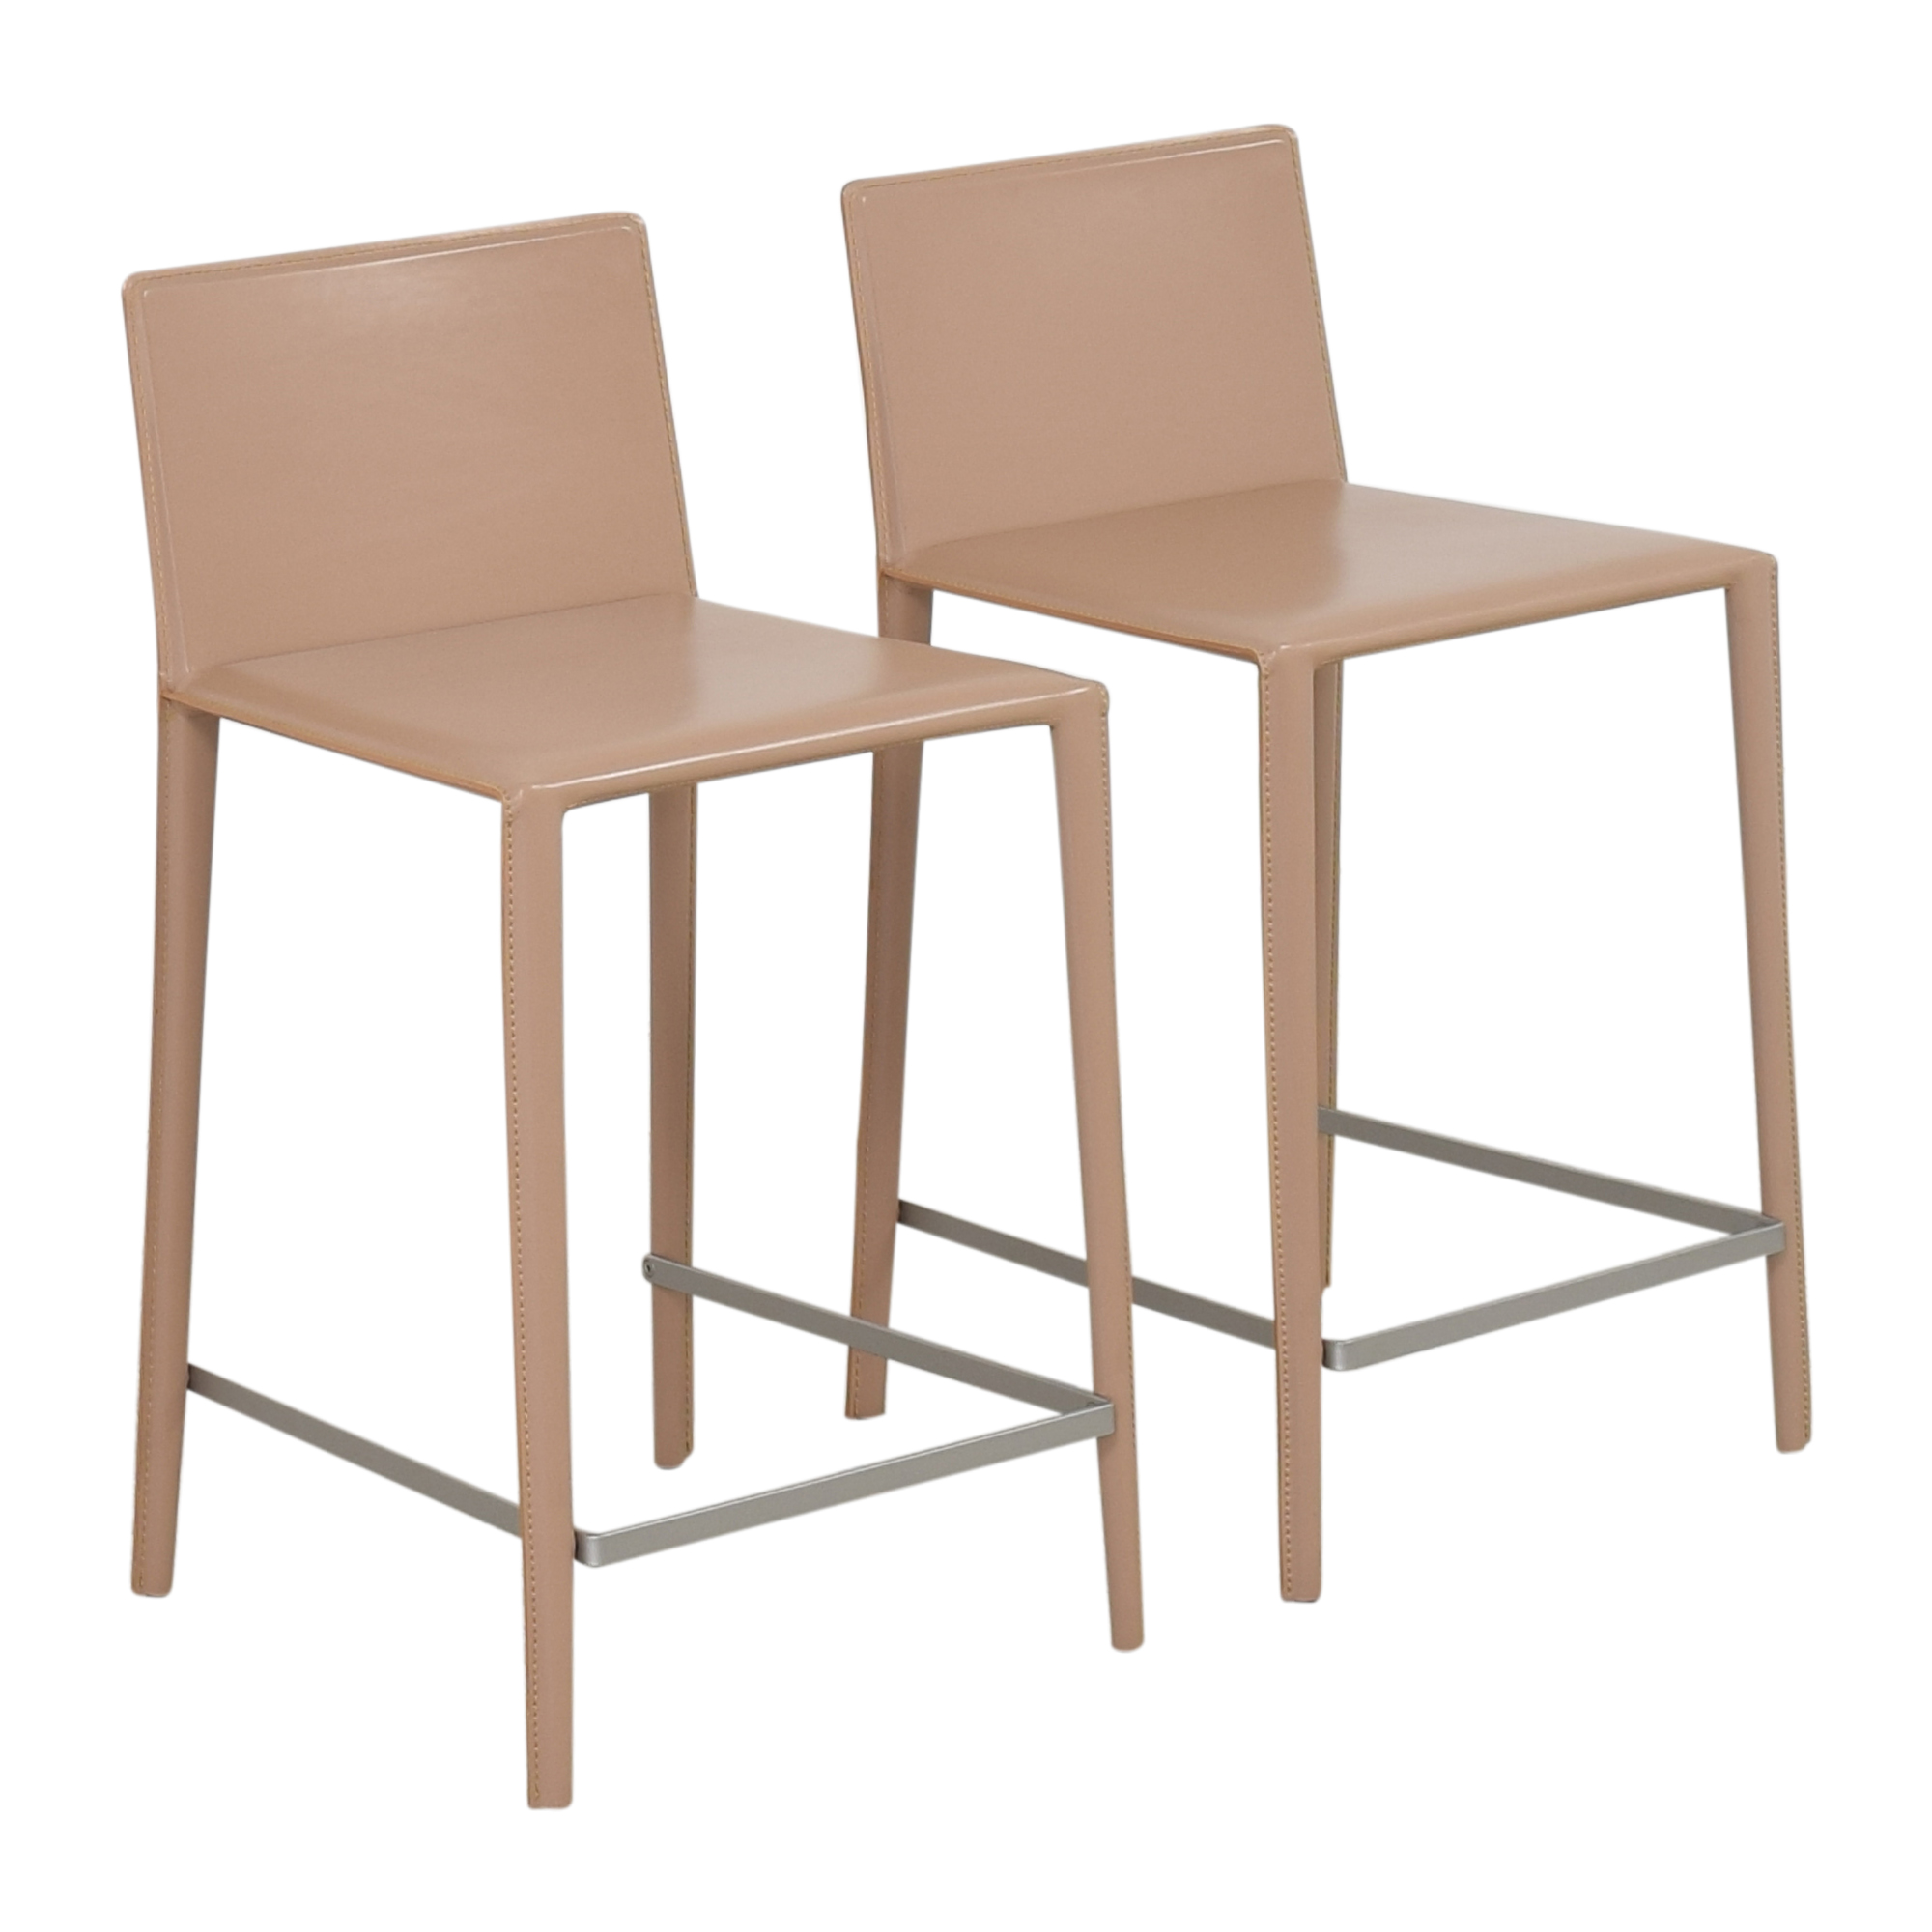 Arper Norma Counter Stools / Chairs